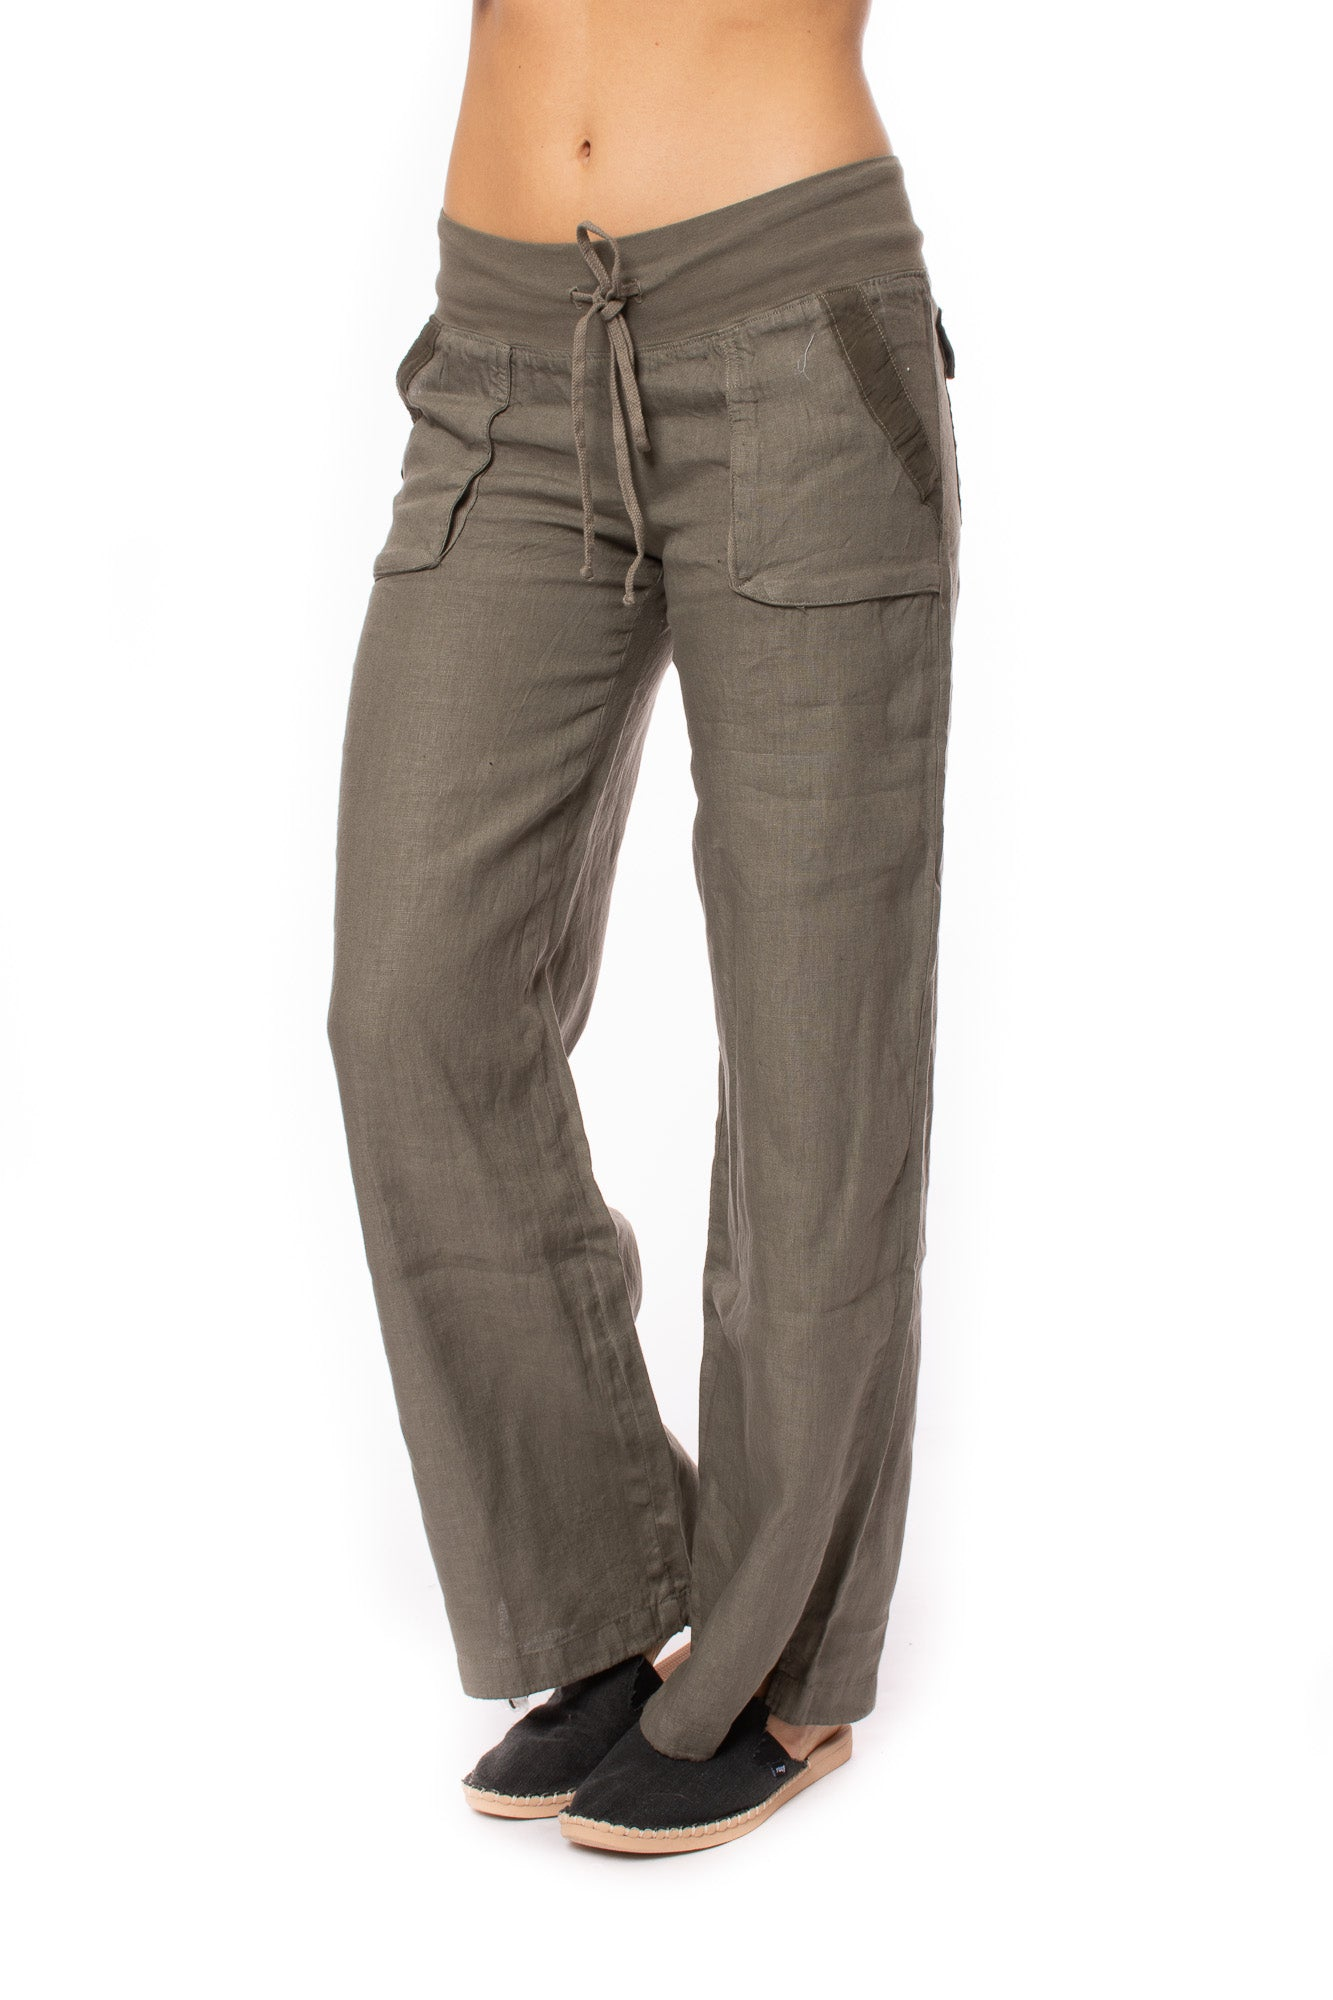 Hard Tail Forever - Four Pocket Slouchy Drawstring Cargo Pants W/Drawstring Hems (L-208, Gravel)